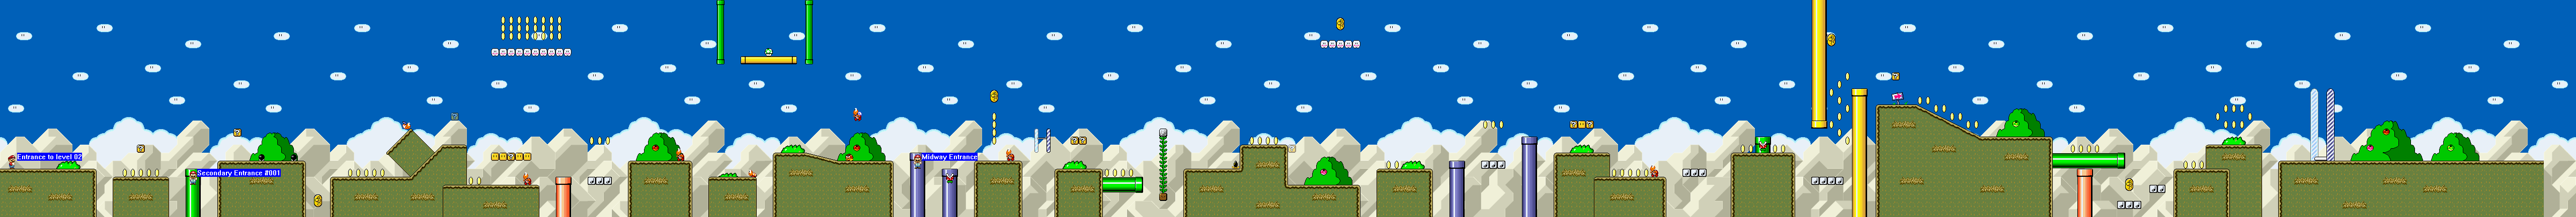 Super Mario: The ultimate adventure (WIP) Level002